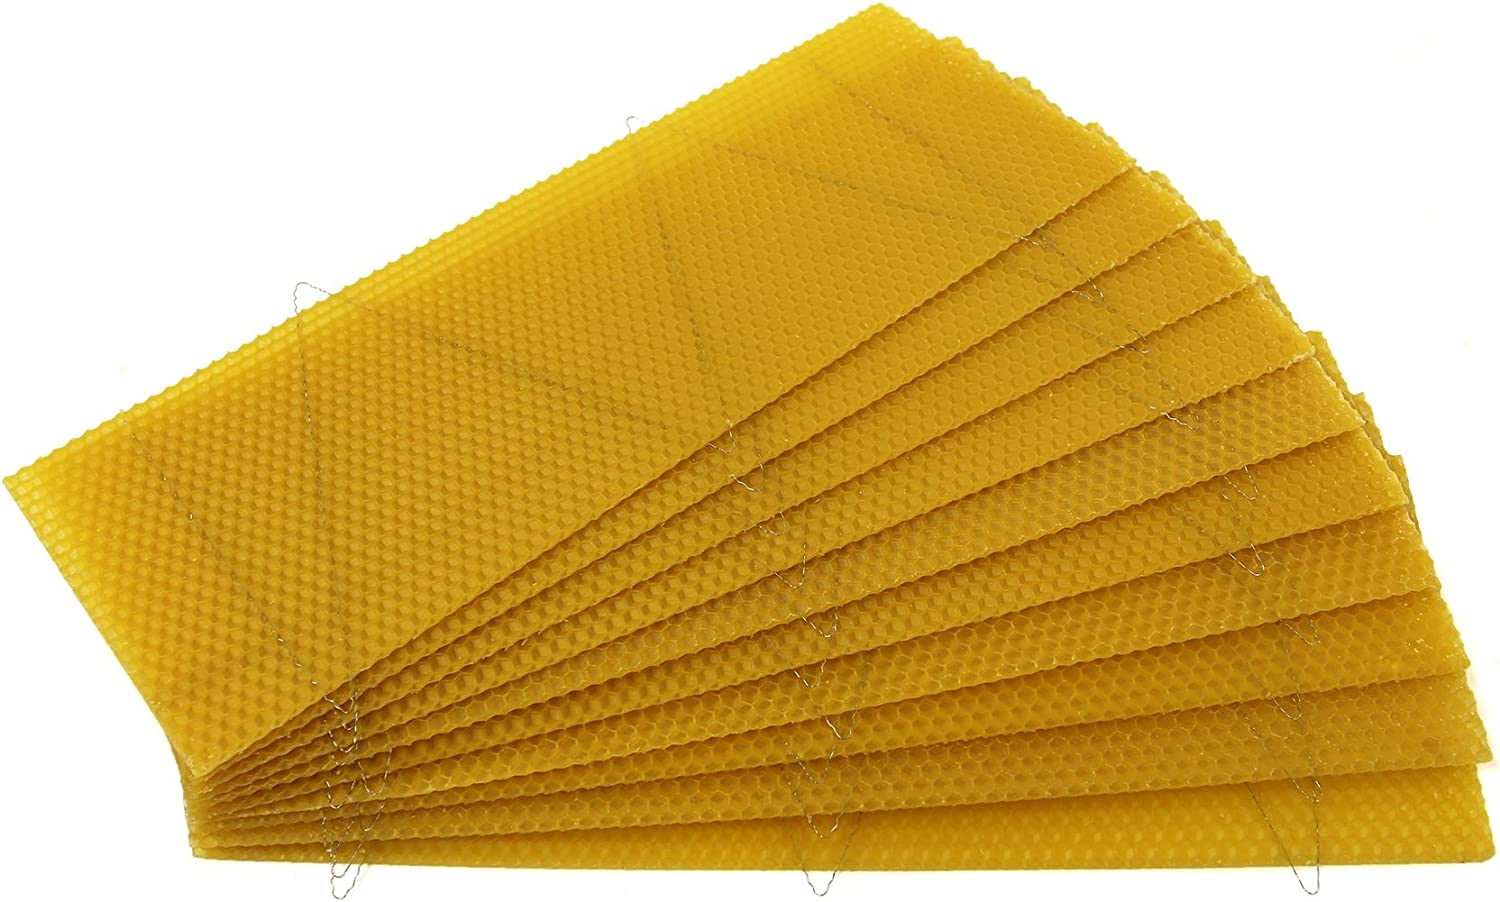 easibee National Bee Hive Super Wired 100/% Natural Beeswax Wax Foundation Sheets 10pcs 50